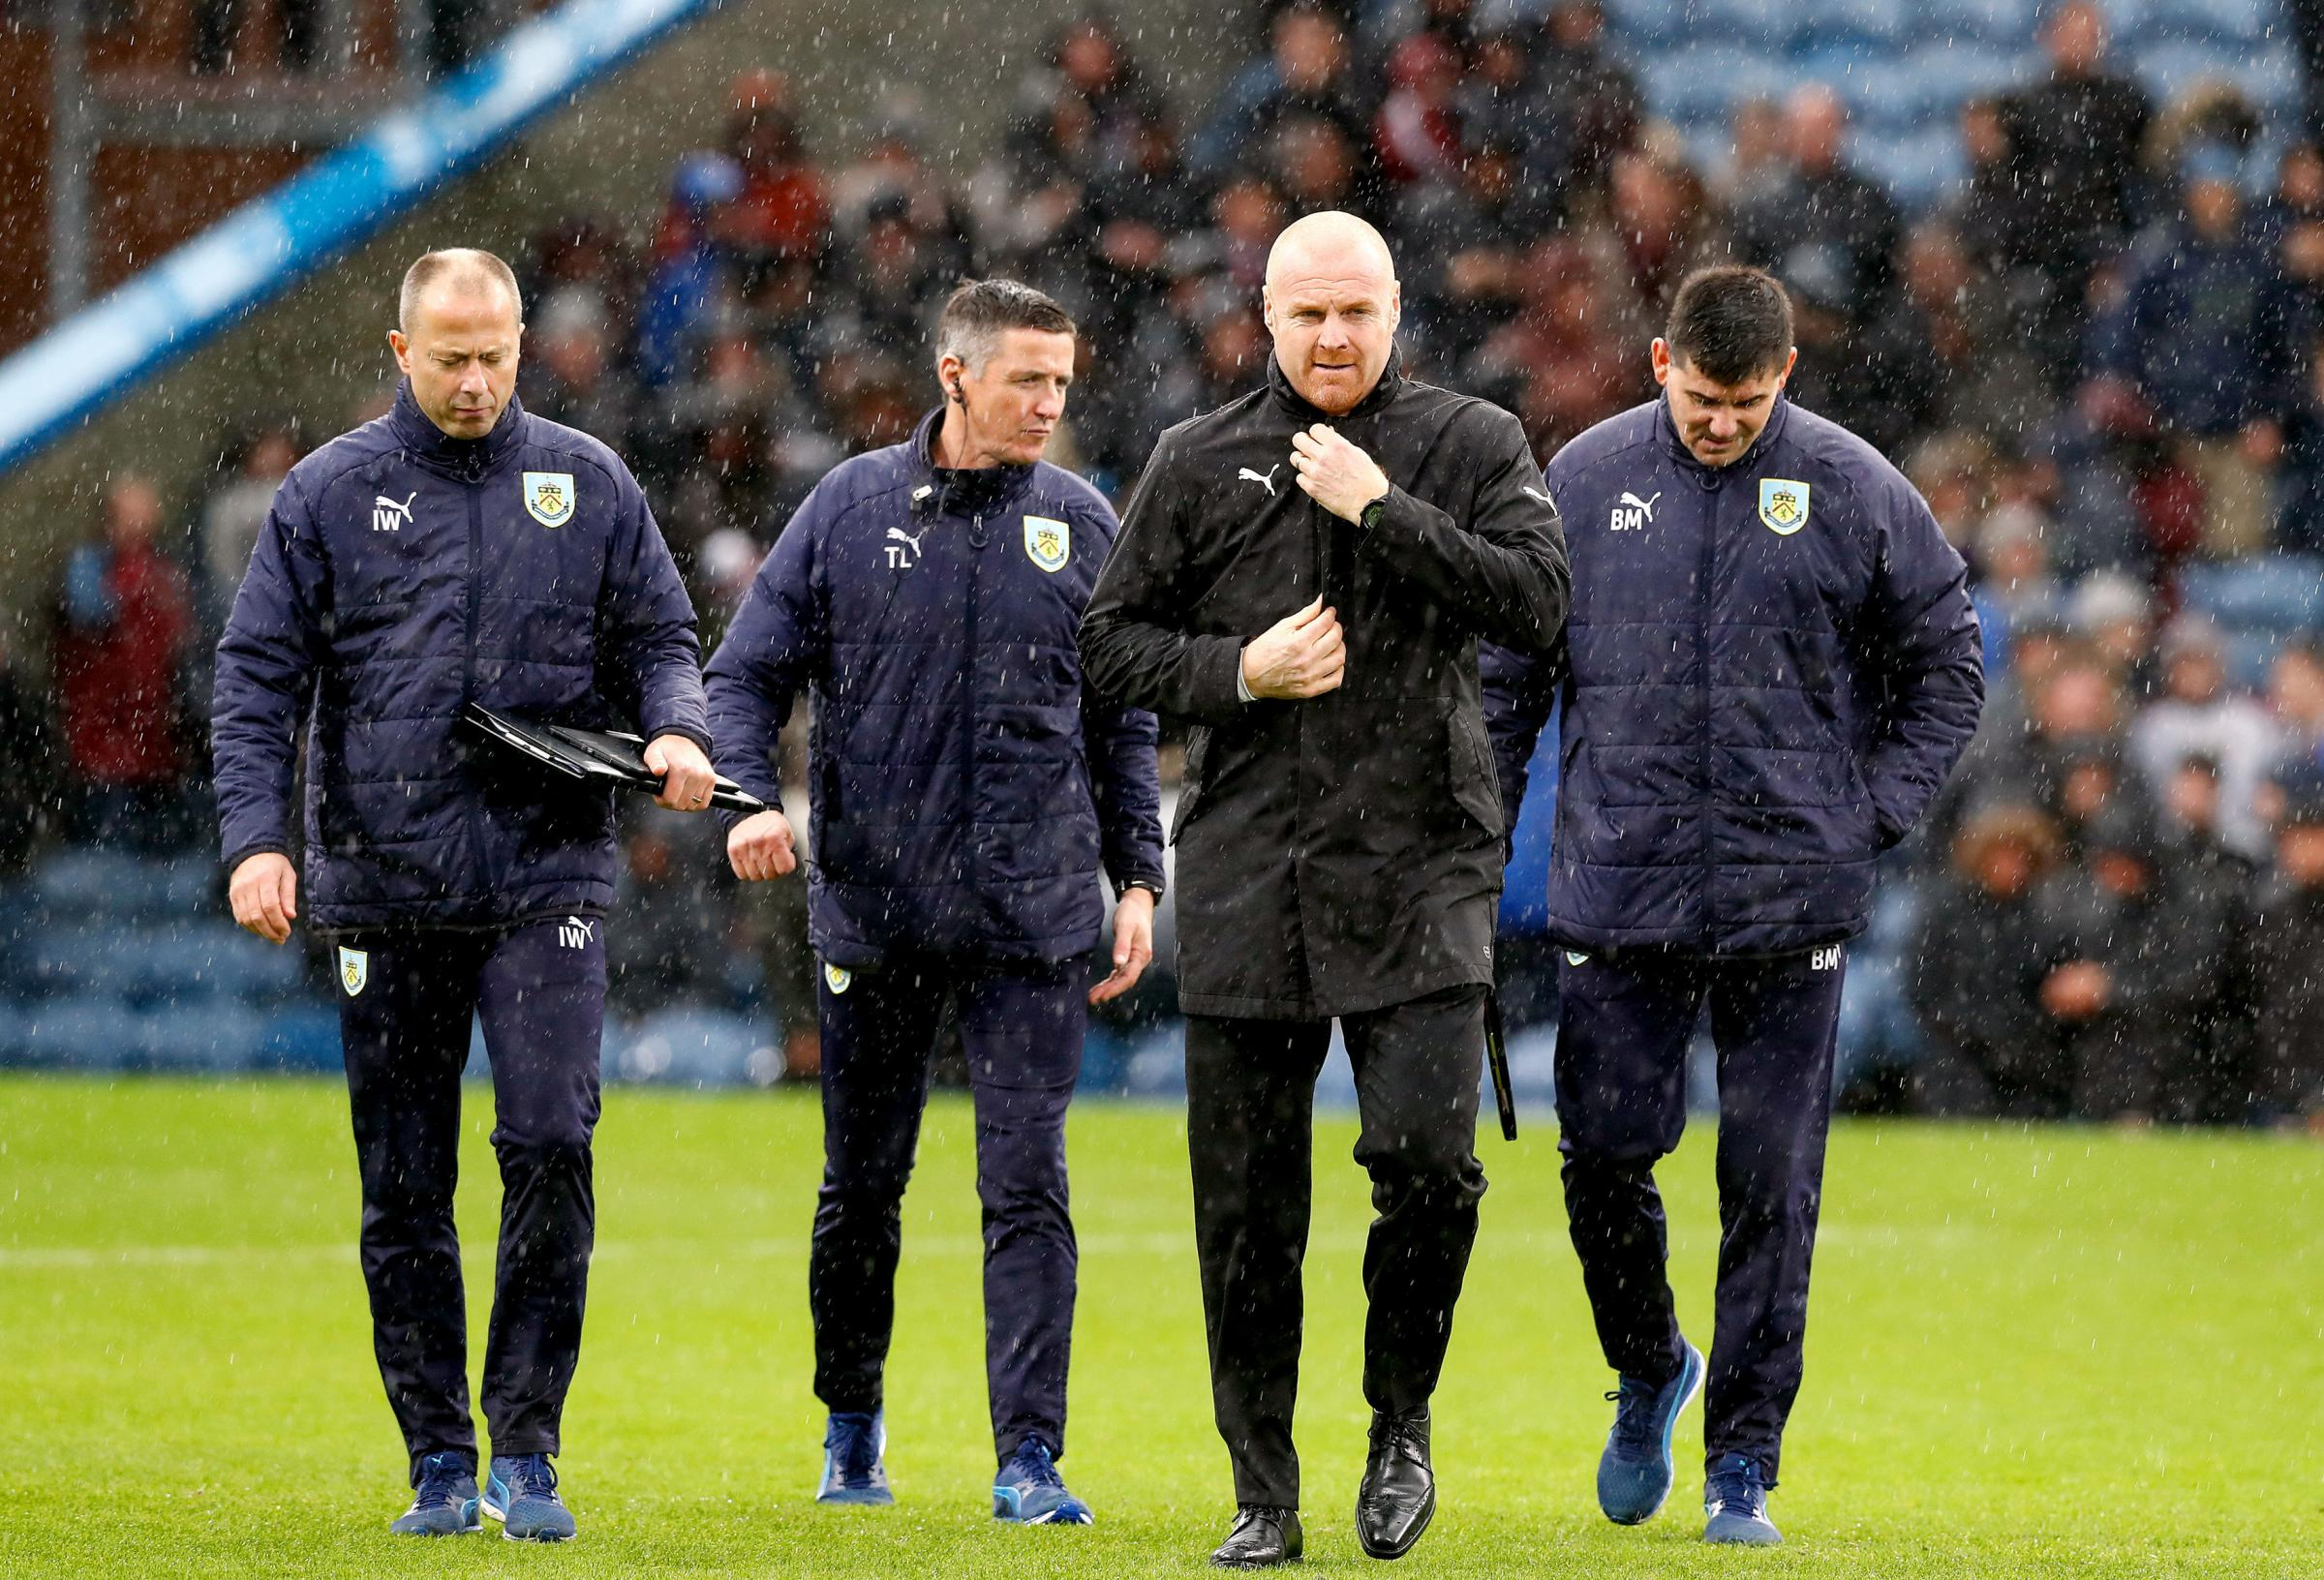 Burnley manager Sean Dyche and his Clarets coaching team